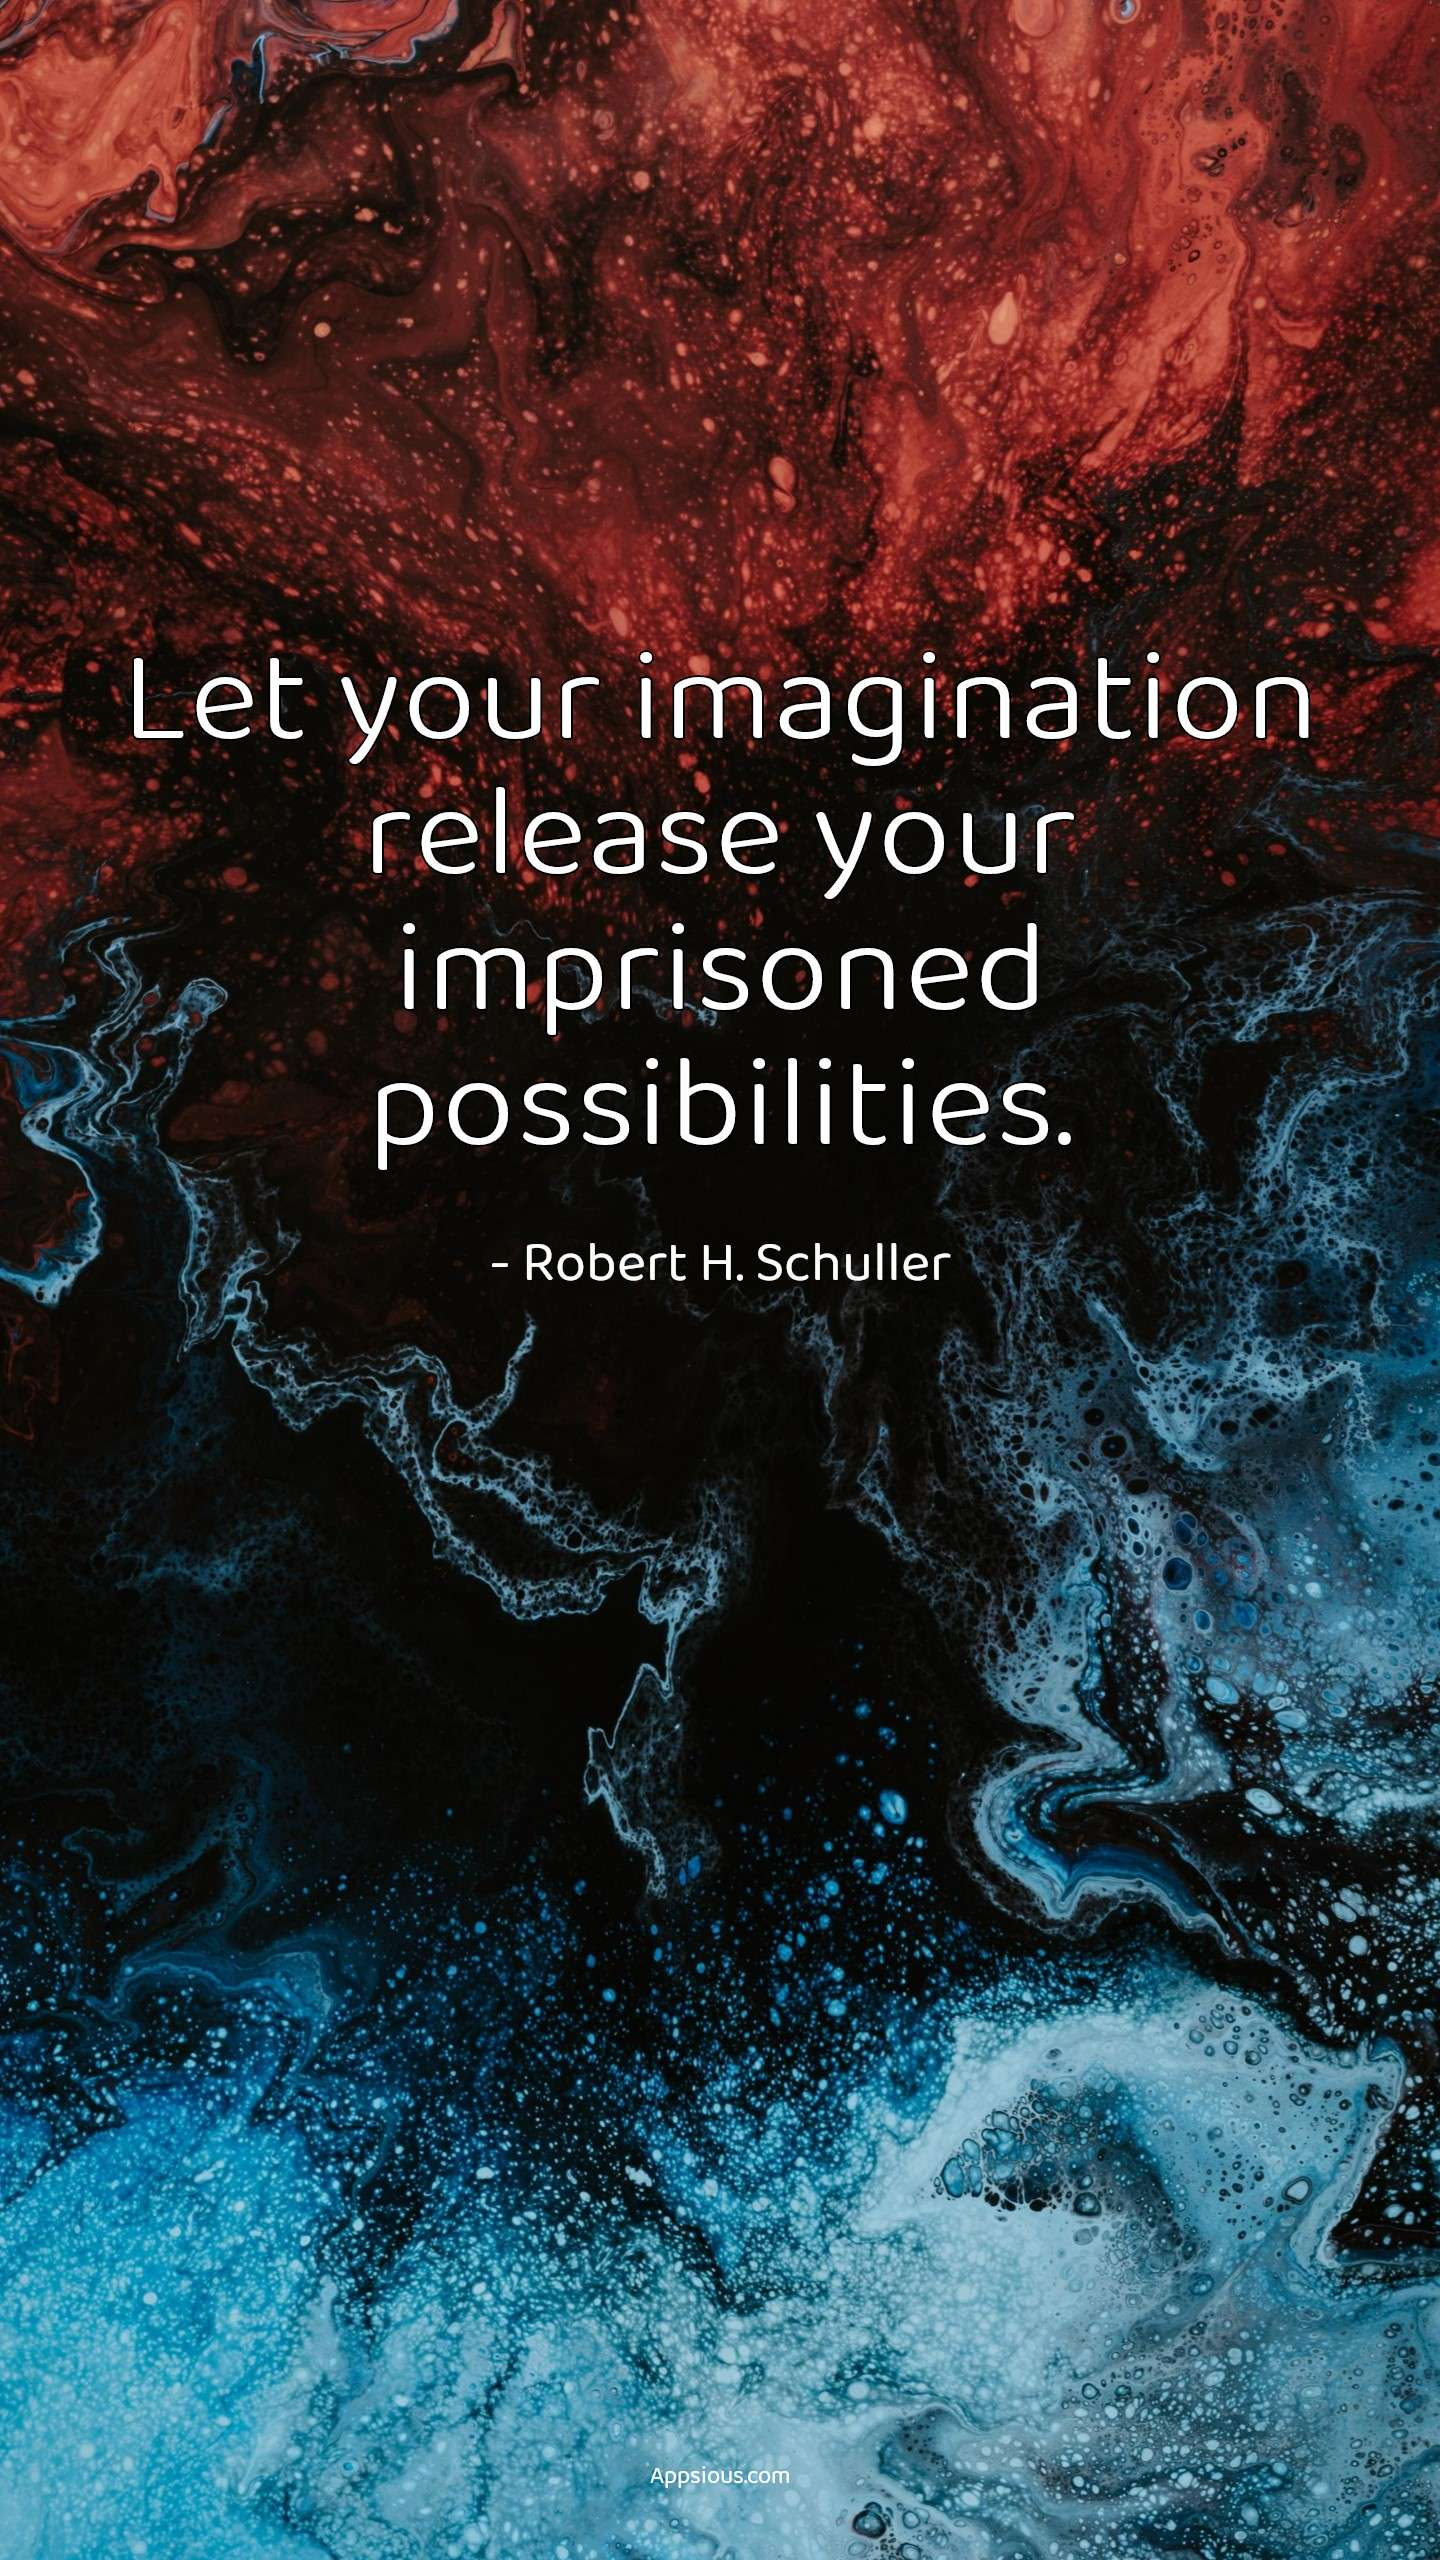 Let your imagination release your imprisoned possibilities.